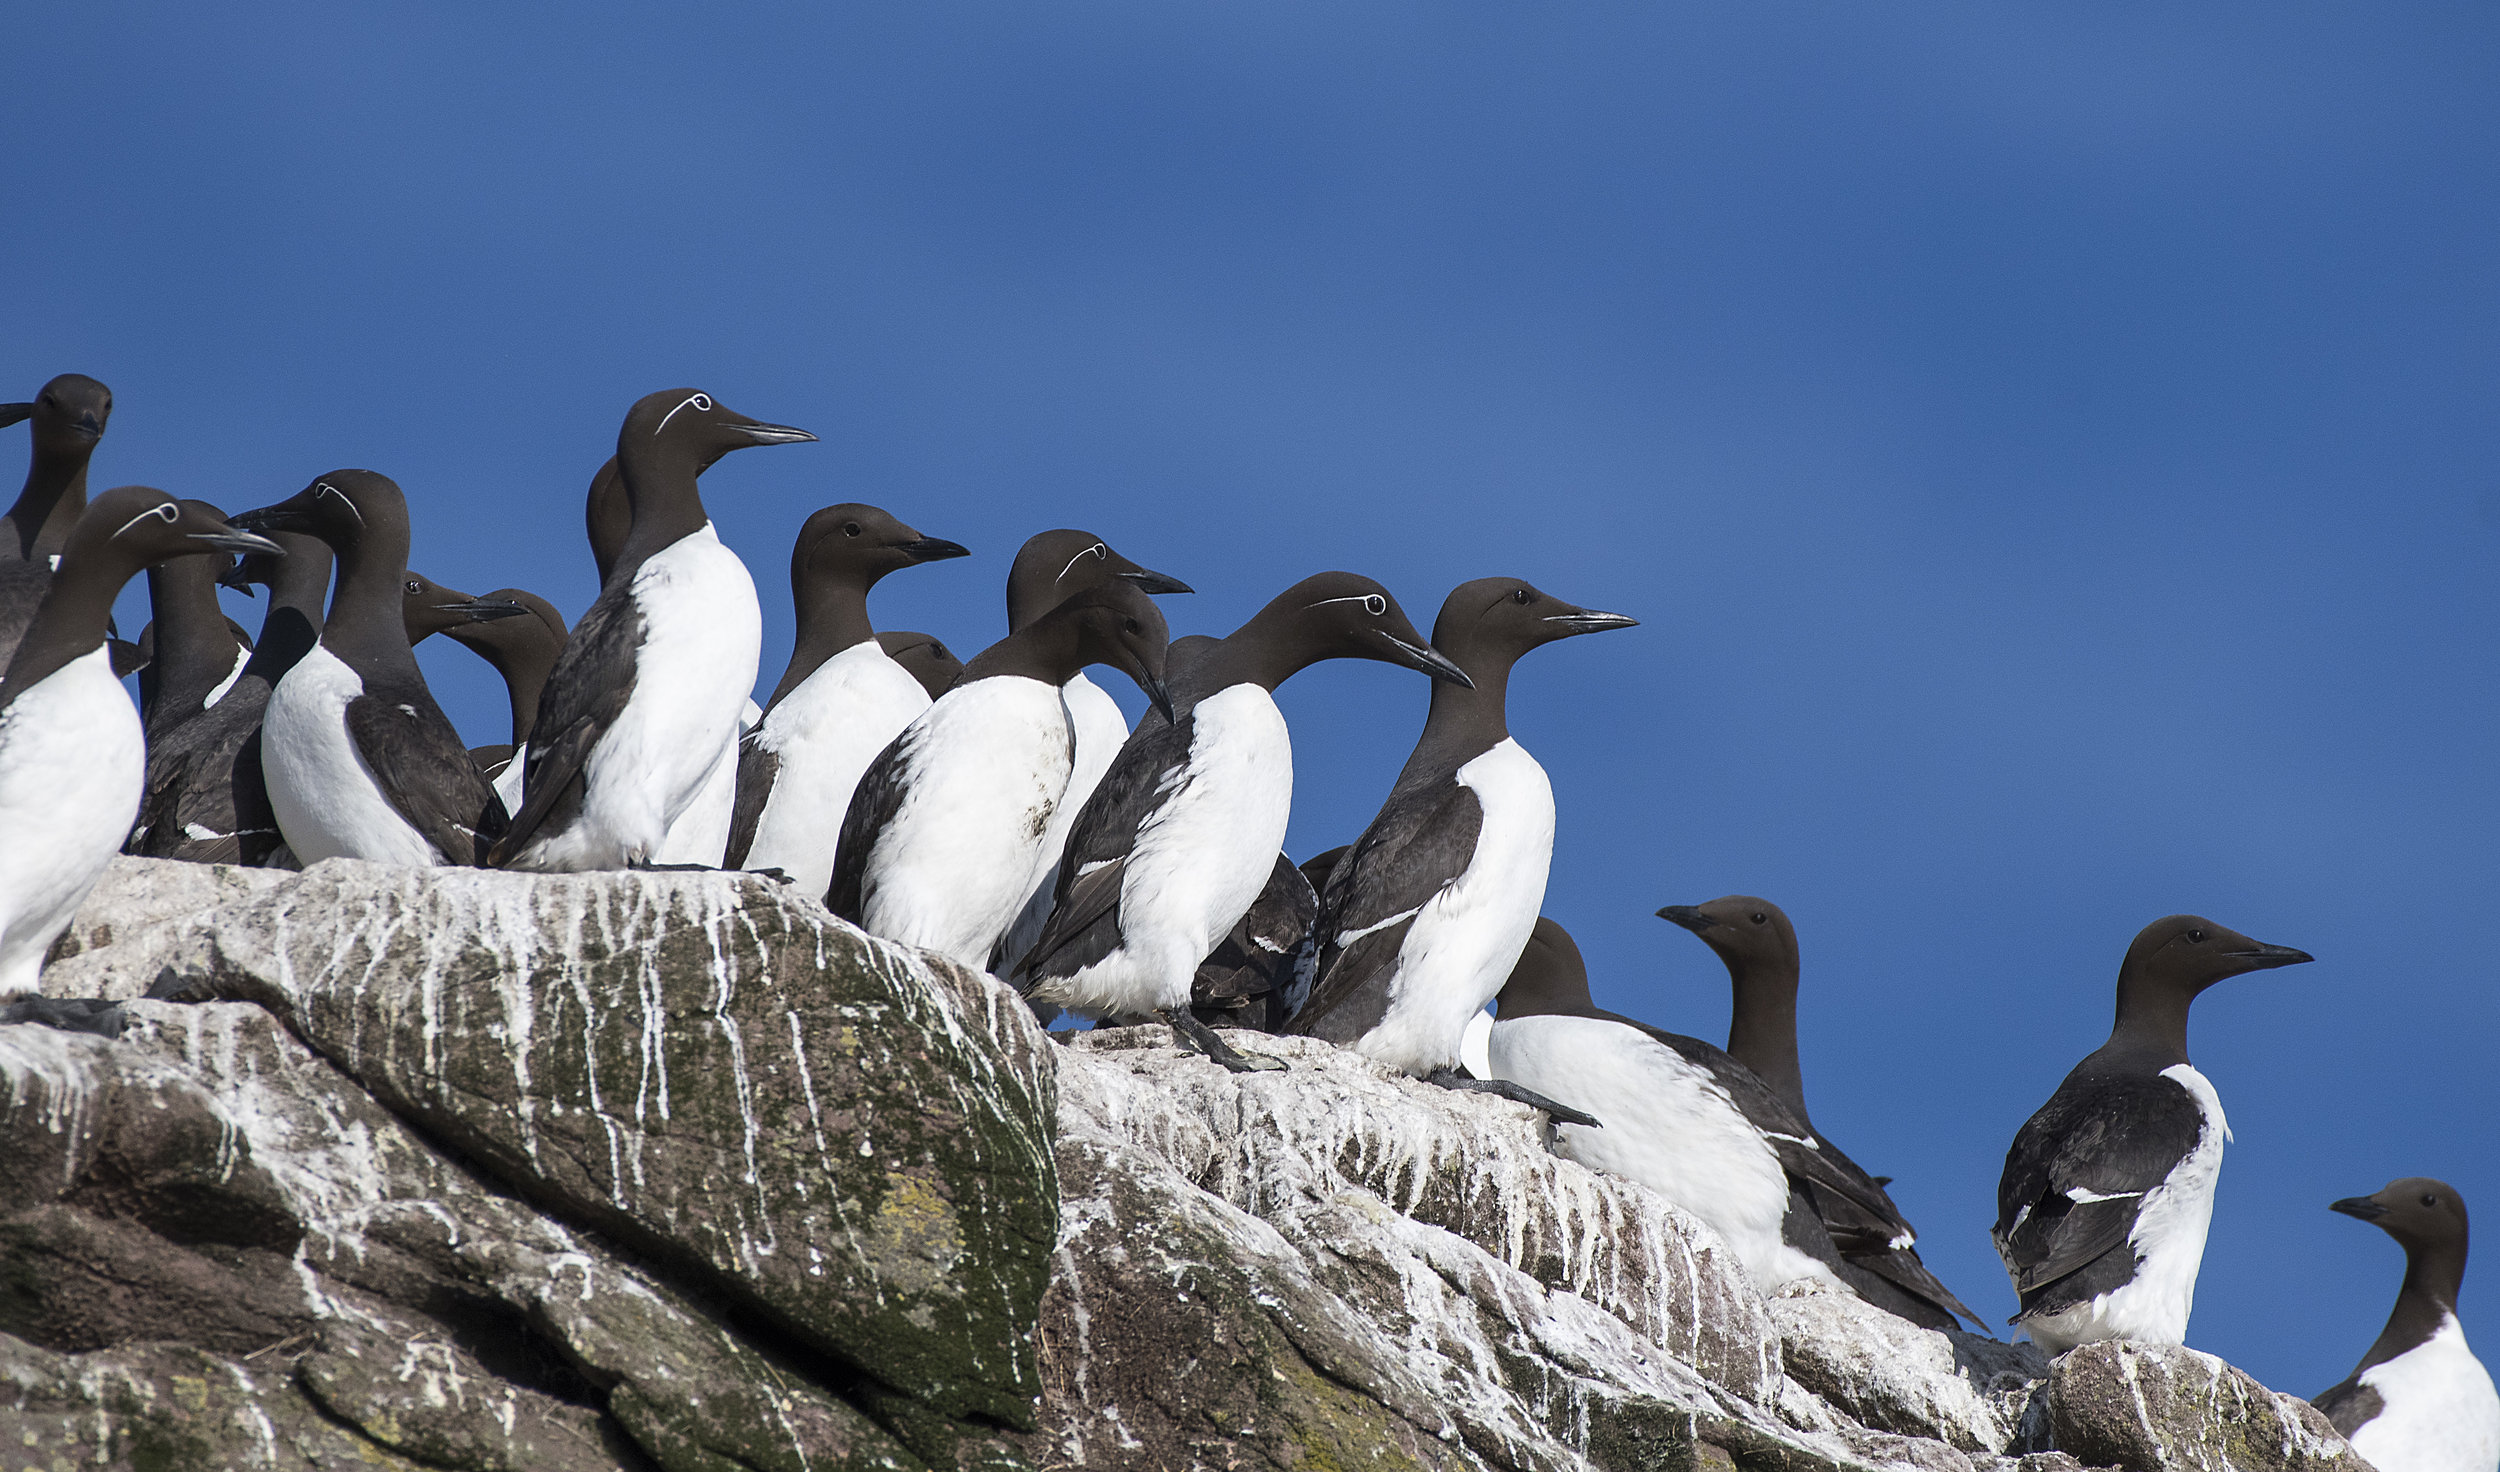 The gang of Murres by Chris Pepper